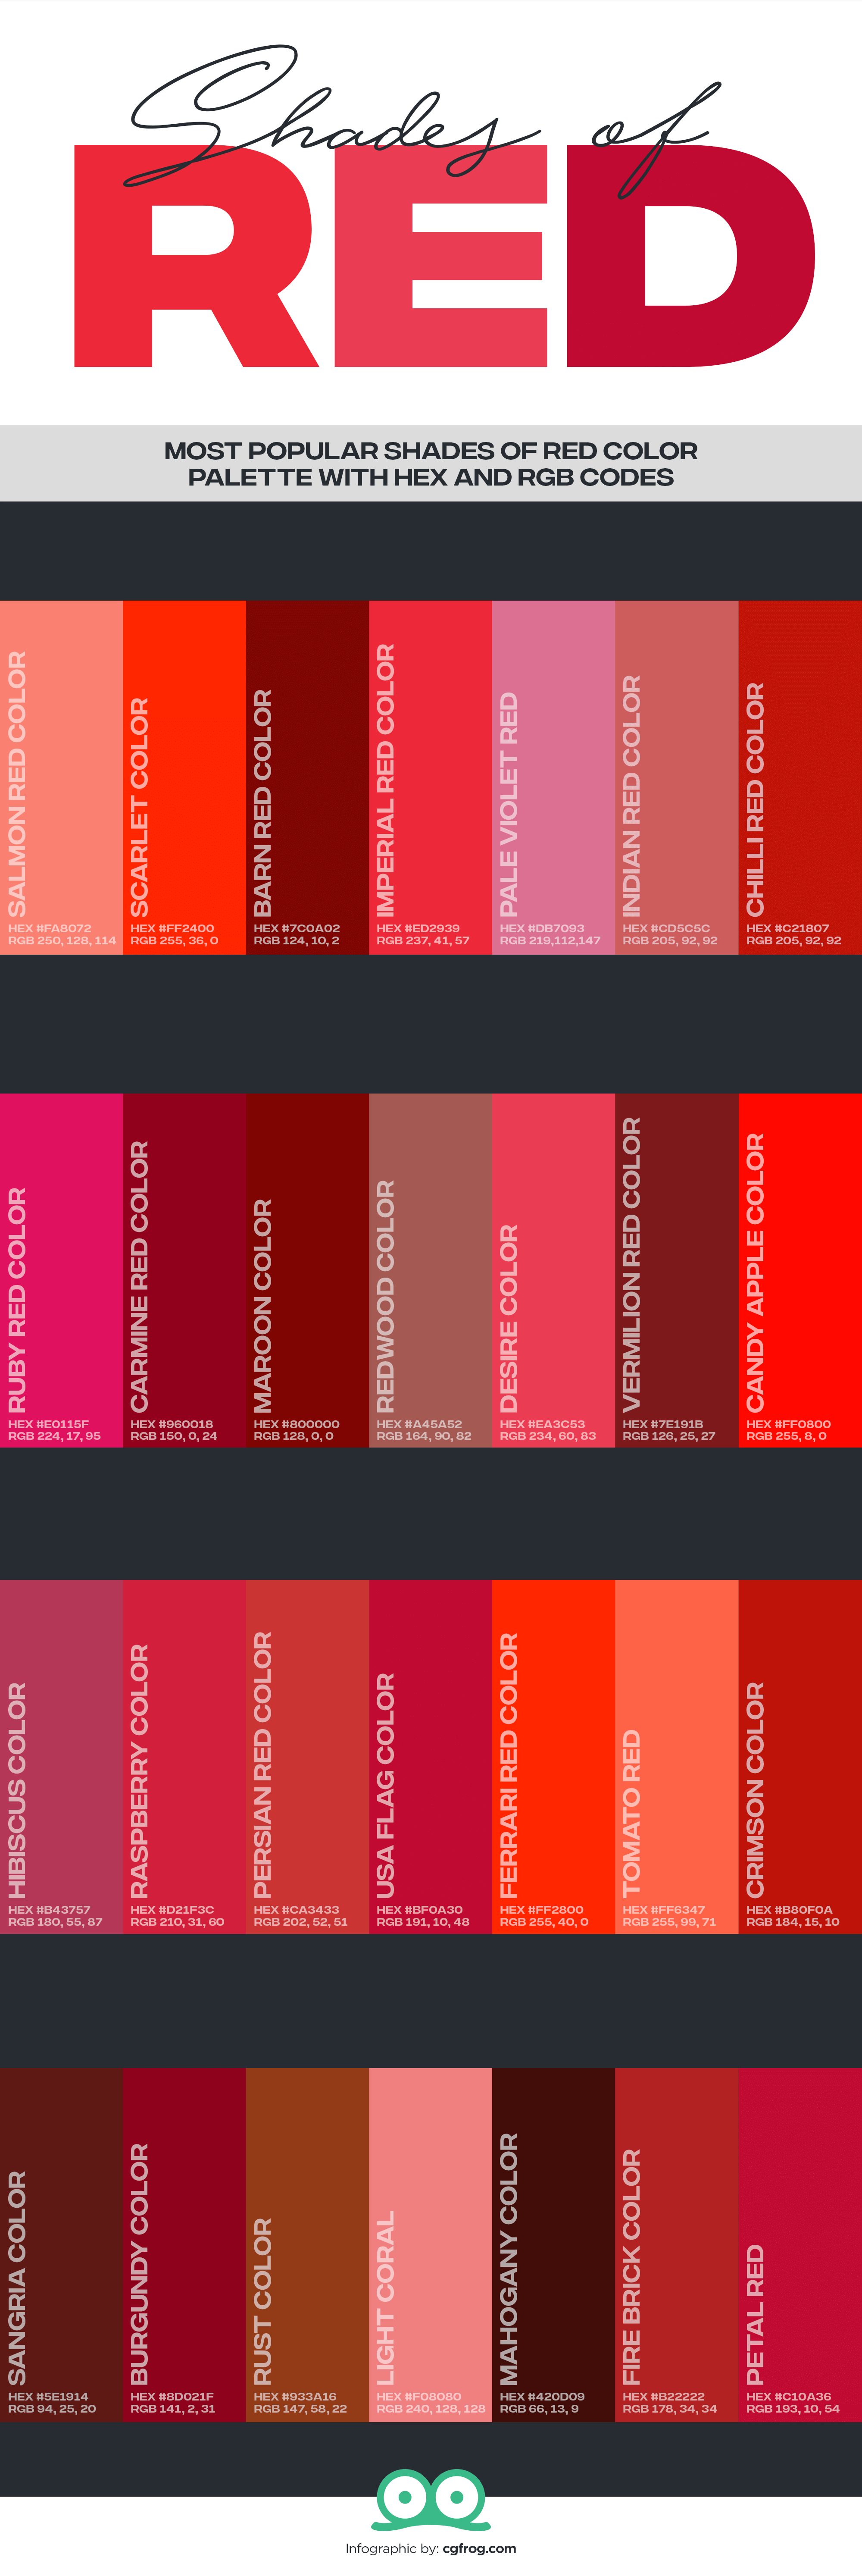 28 Shades Of Red Color Correct Name Of All Red Colors With Hex And Rgb Codes Cgfrog